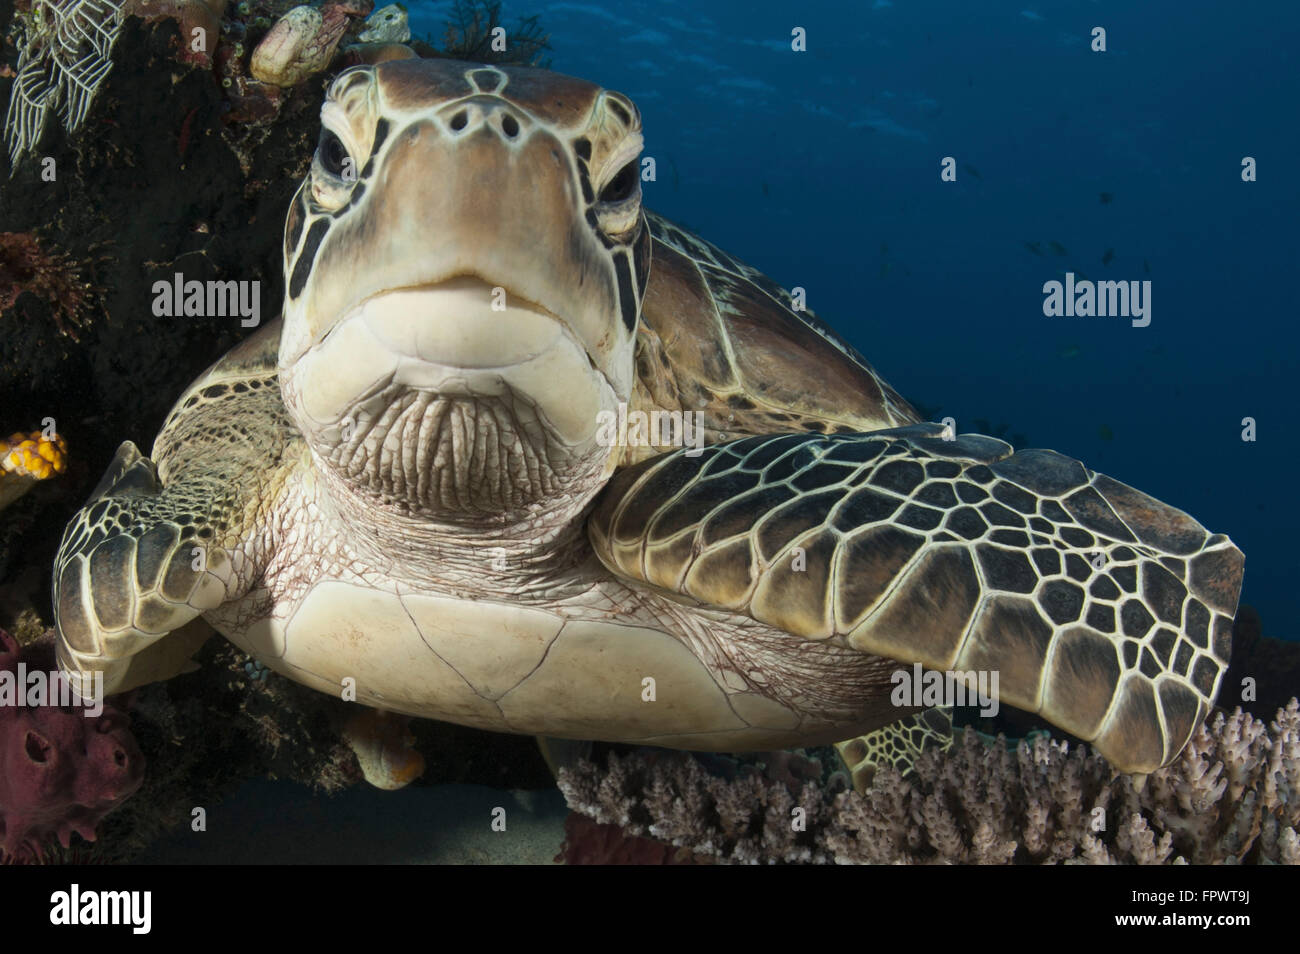 Close-up view of a green turtle (Chelonia mydas) resting on a reef top in Komodo National Park, Indonesia. - Stock Image